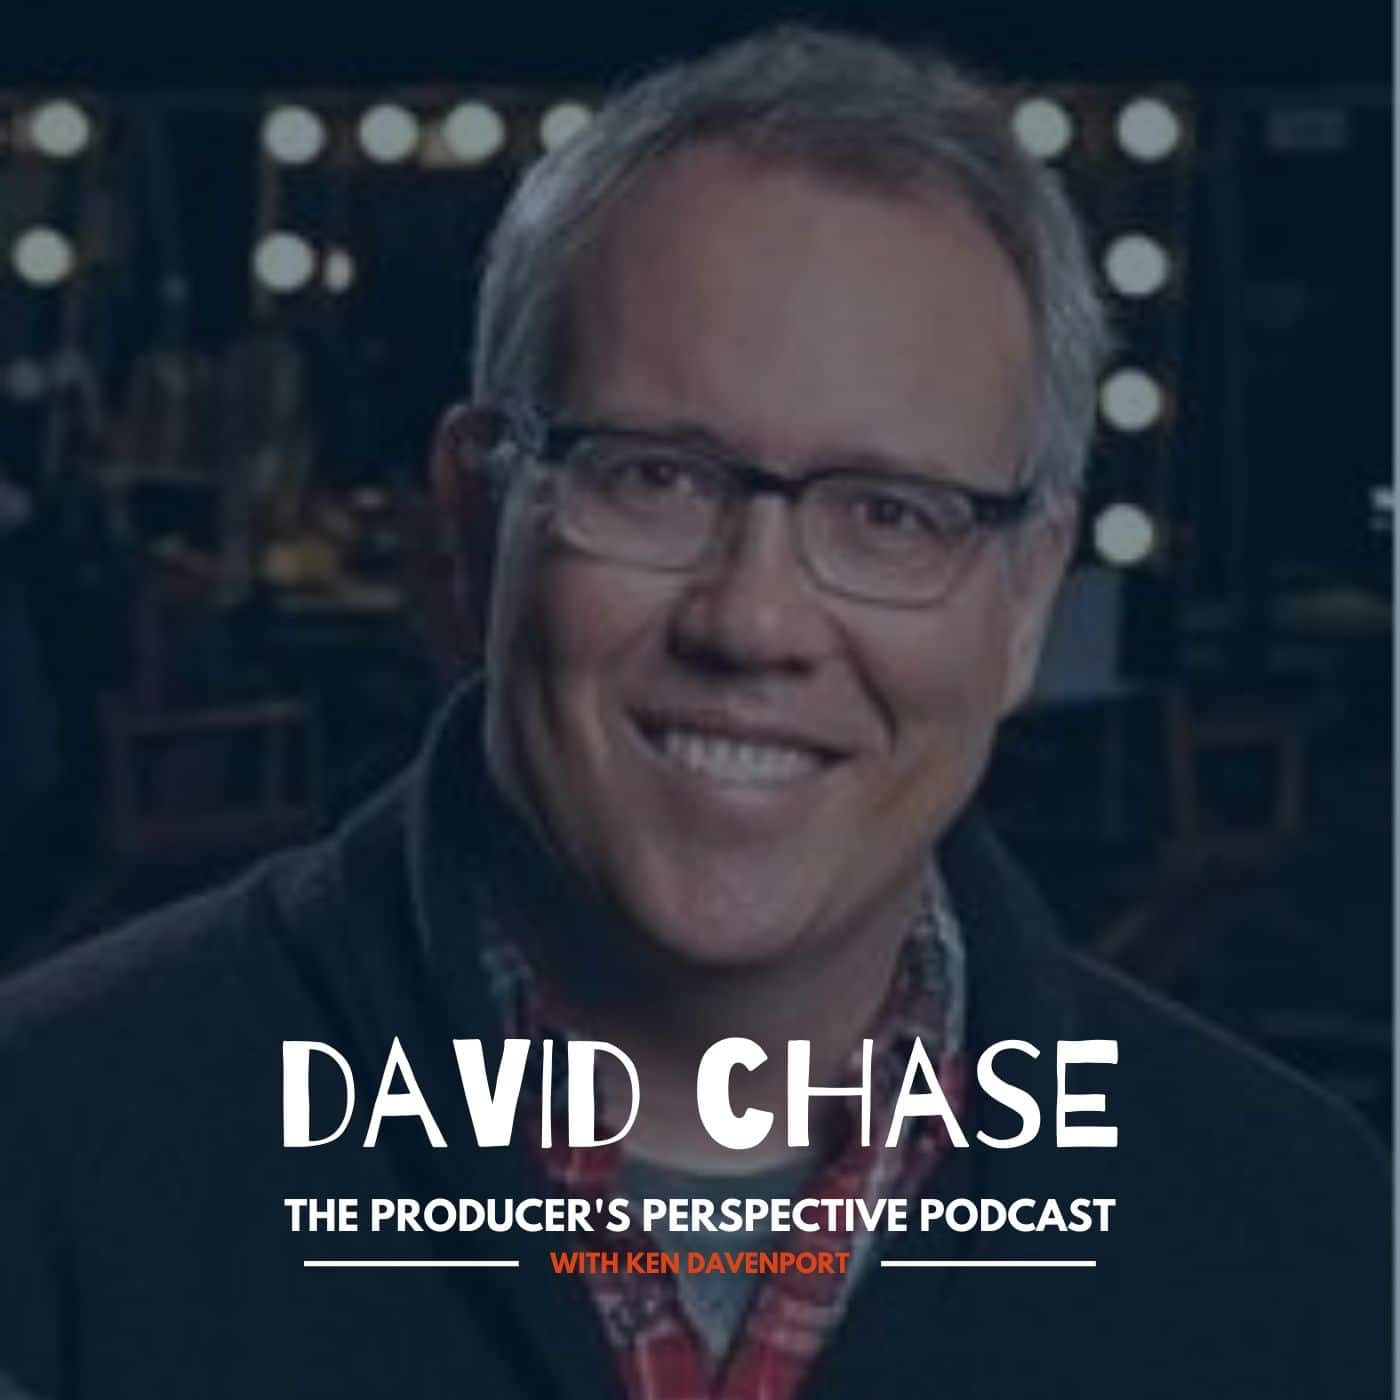 Ken Davenport's The Producer's Perspective Podcast Episode 173 - David Chase